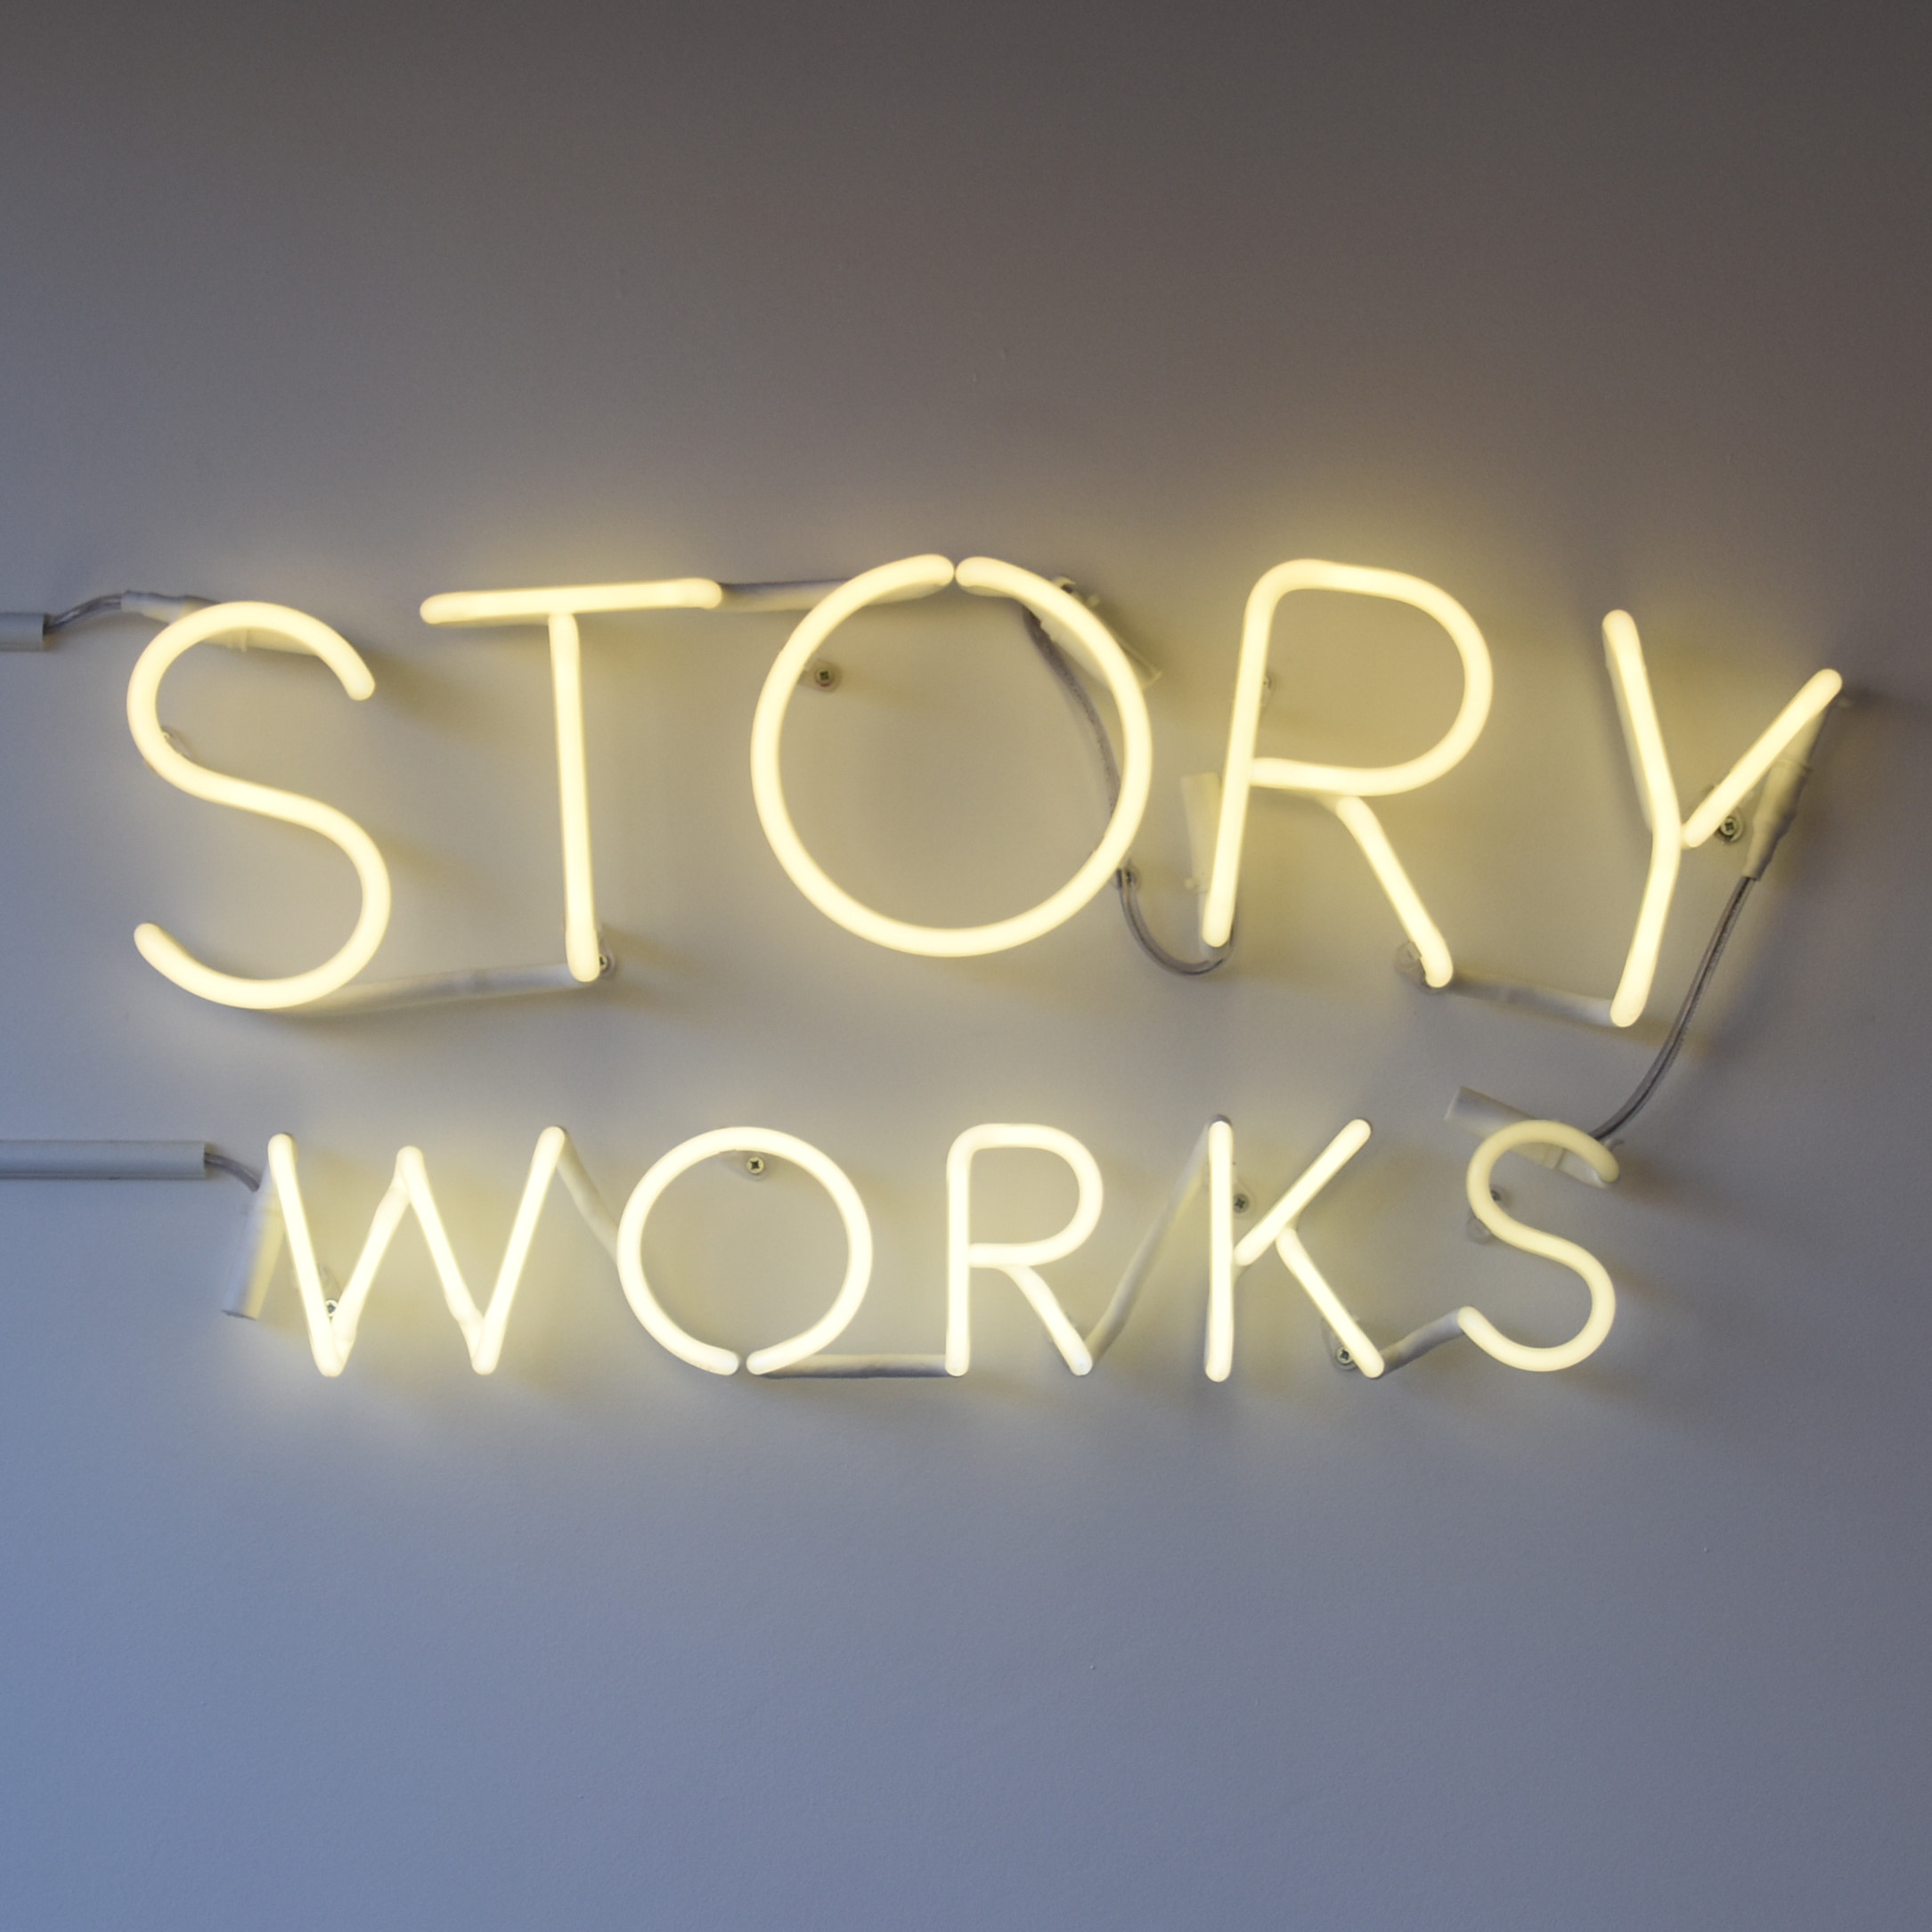 "The sign says it all: ""Story Works"", from the wall of Story Works by Clapham Junction."